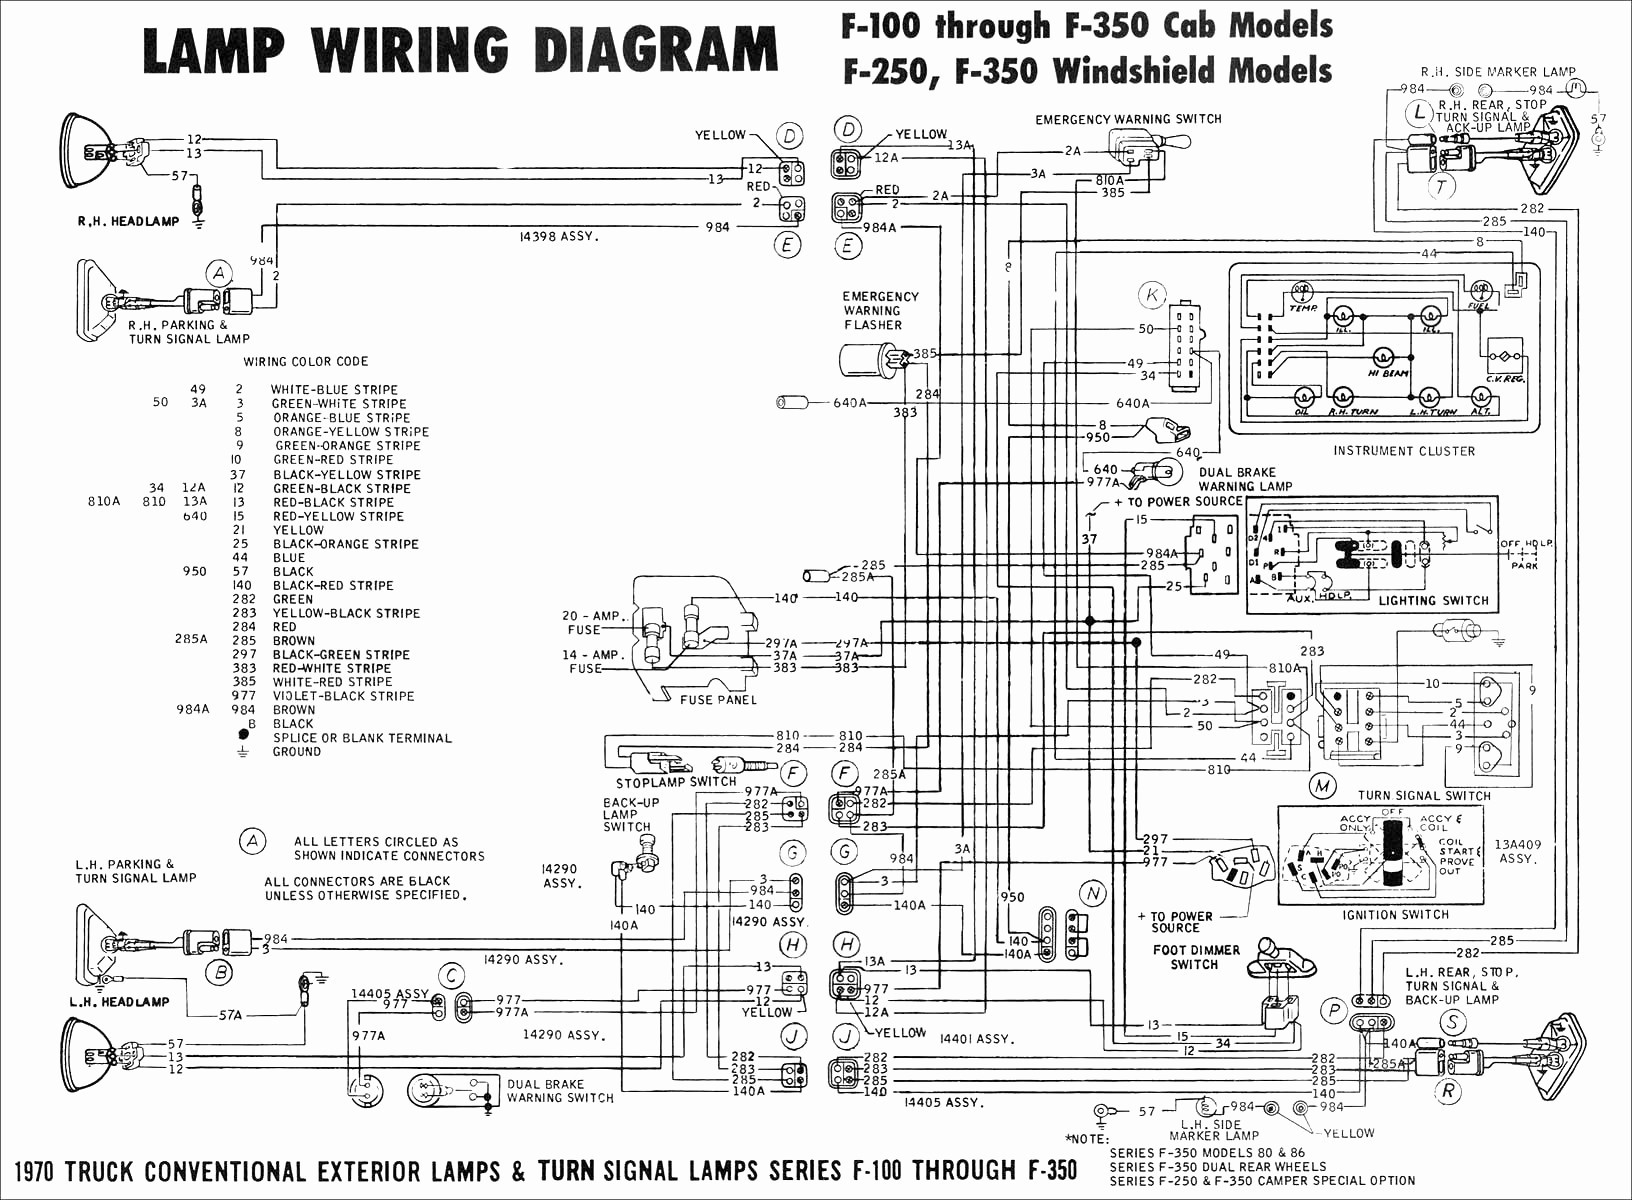 Walkin Freezer Wiring Diagram from detoxicrecenze.com